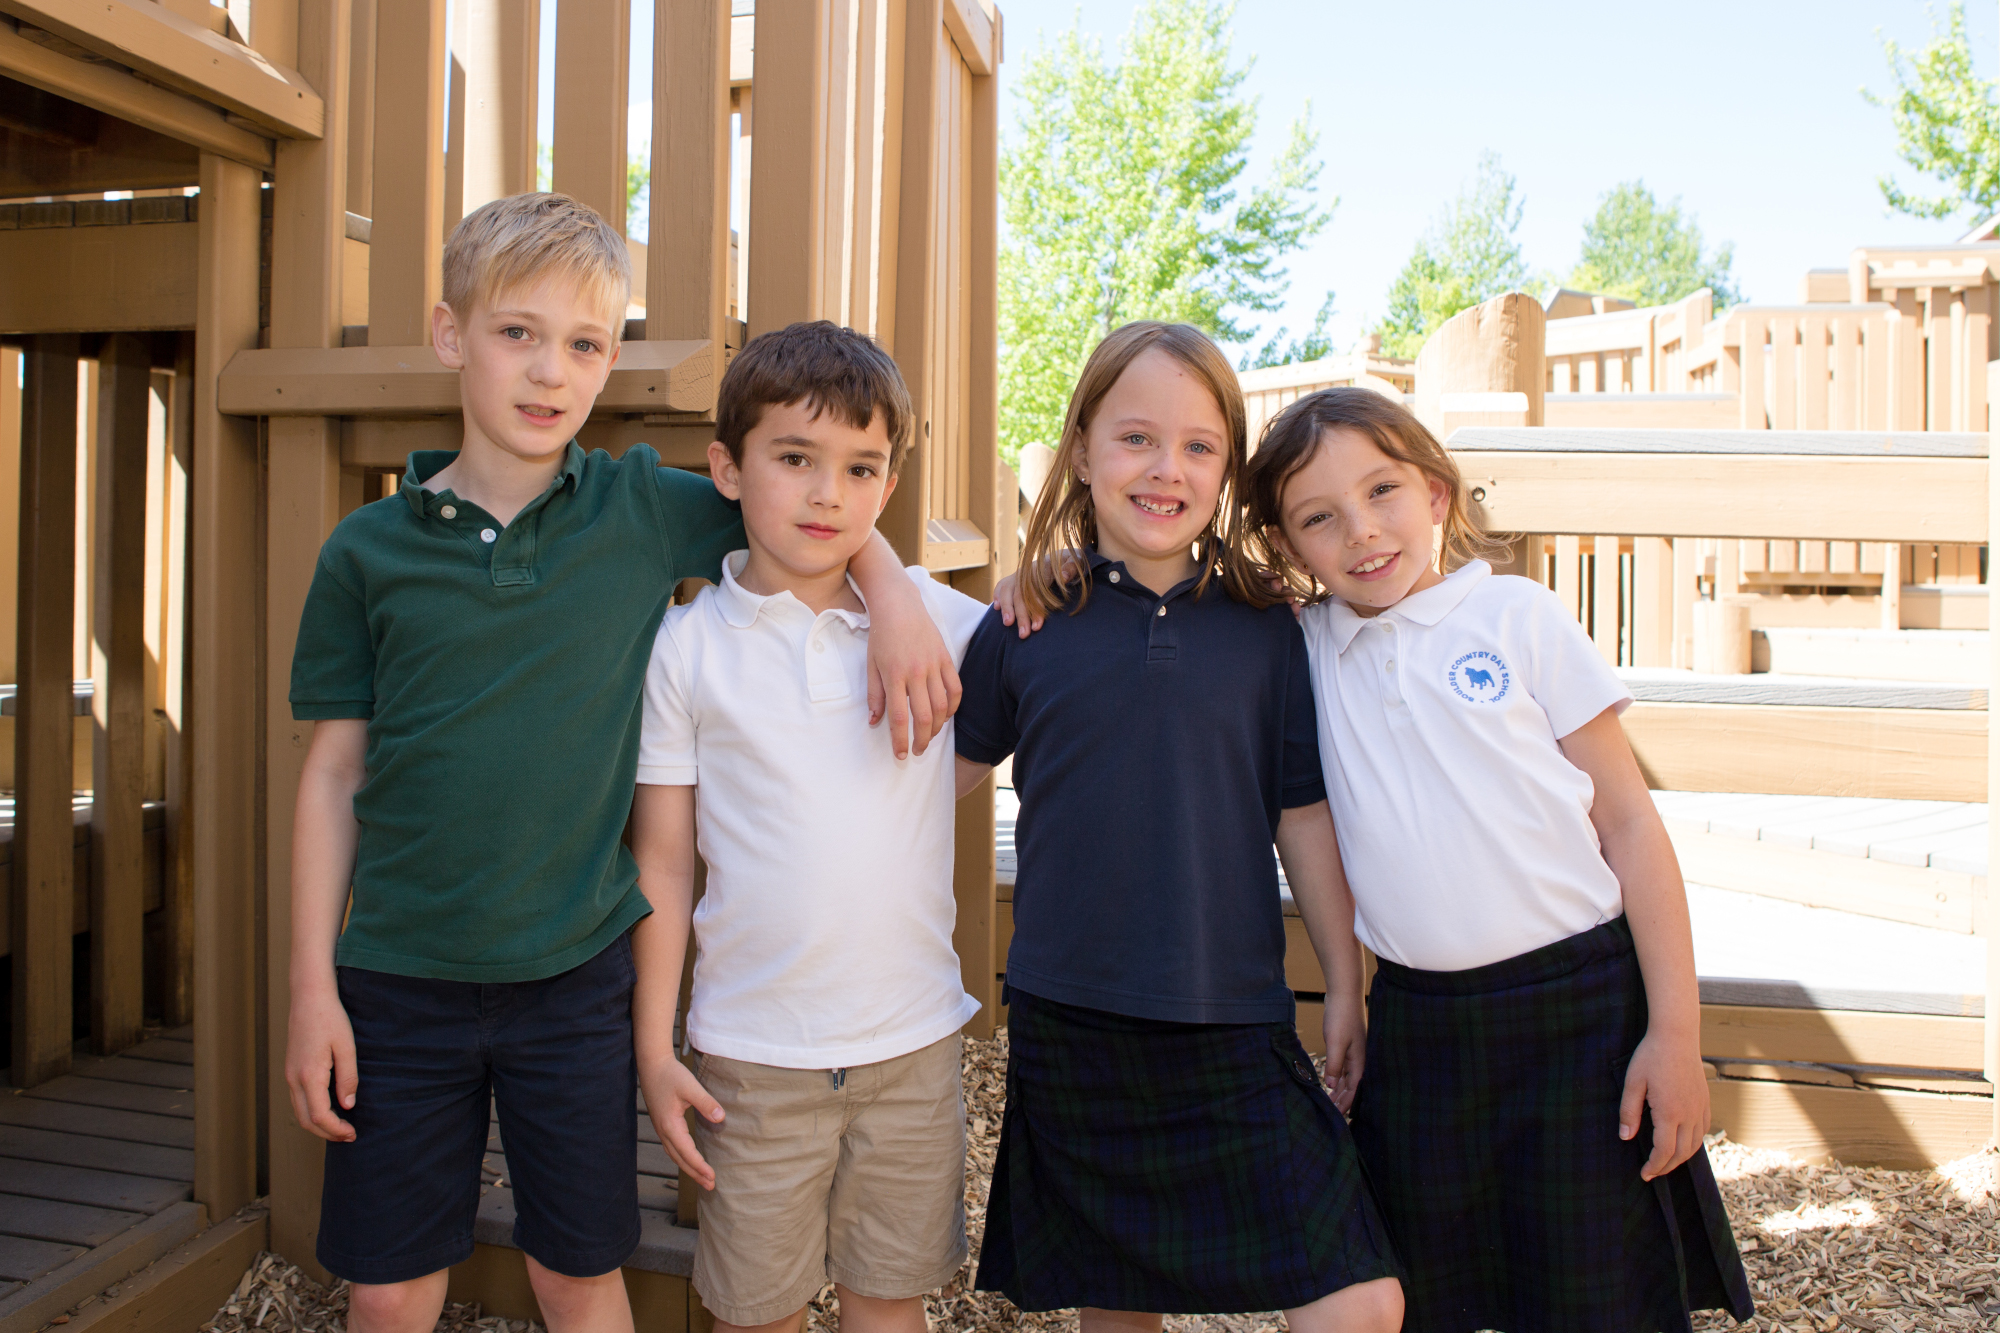 4 Elementary students together on a playground